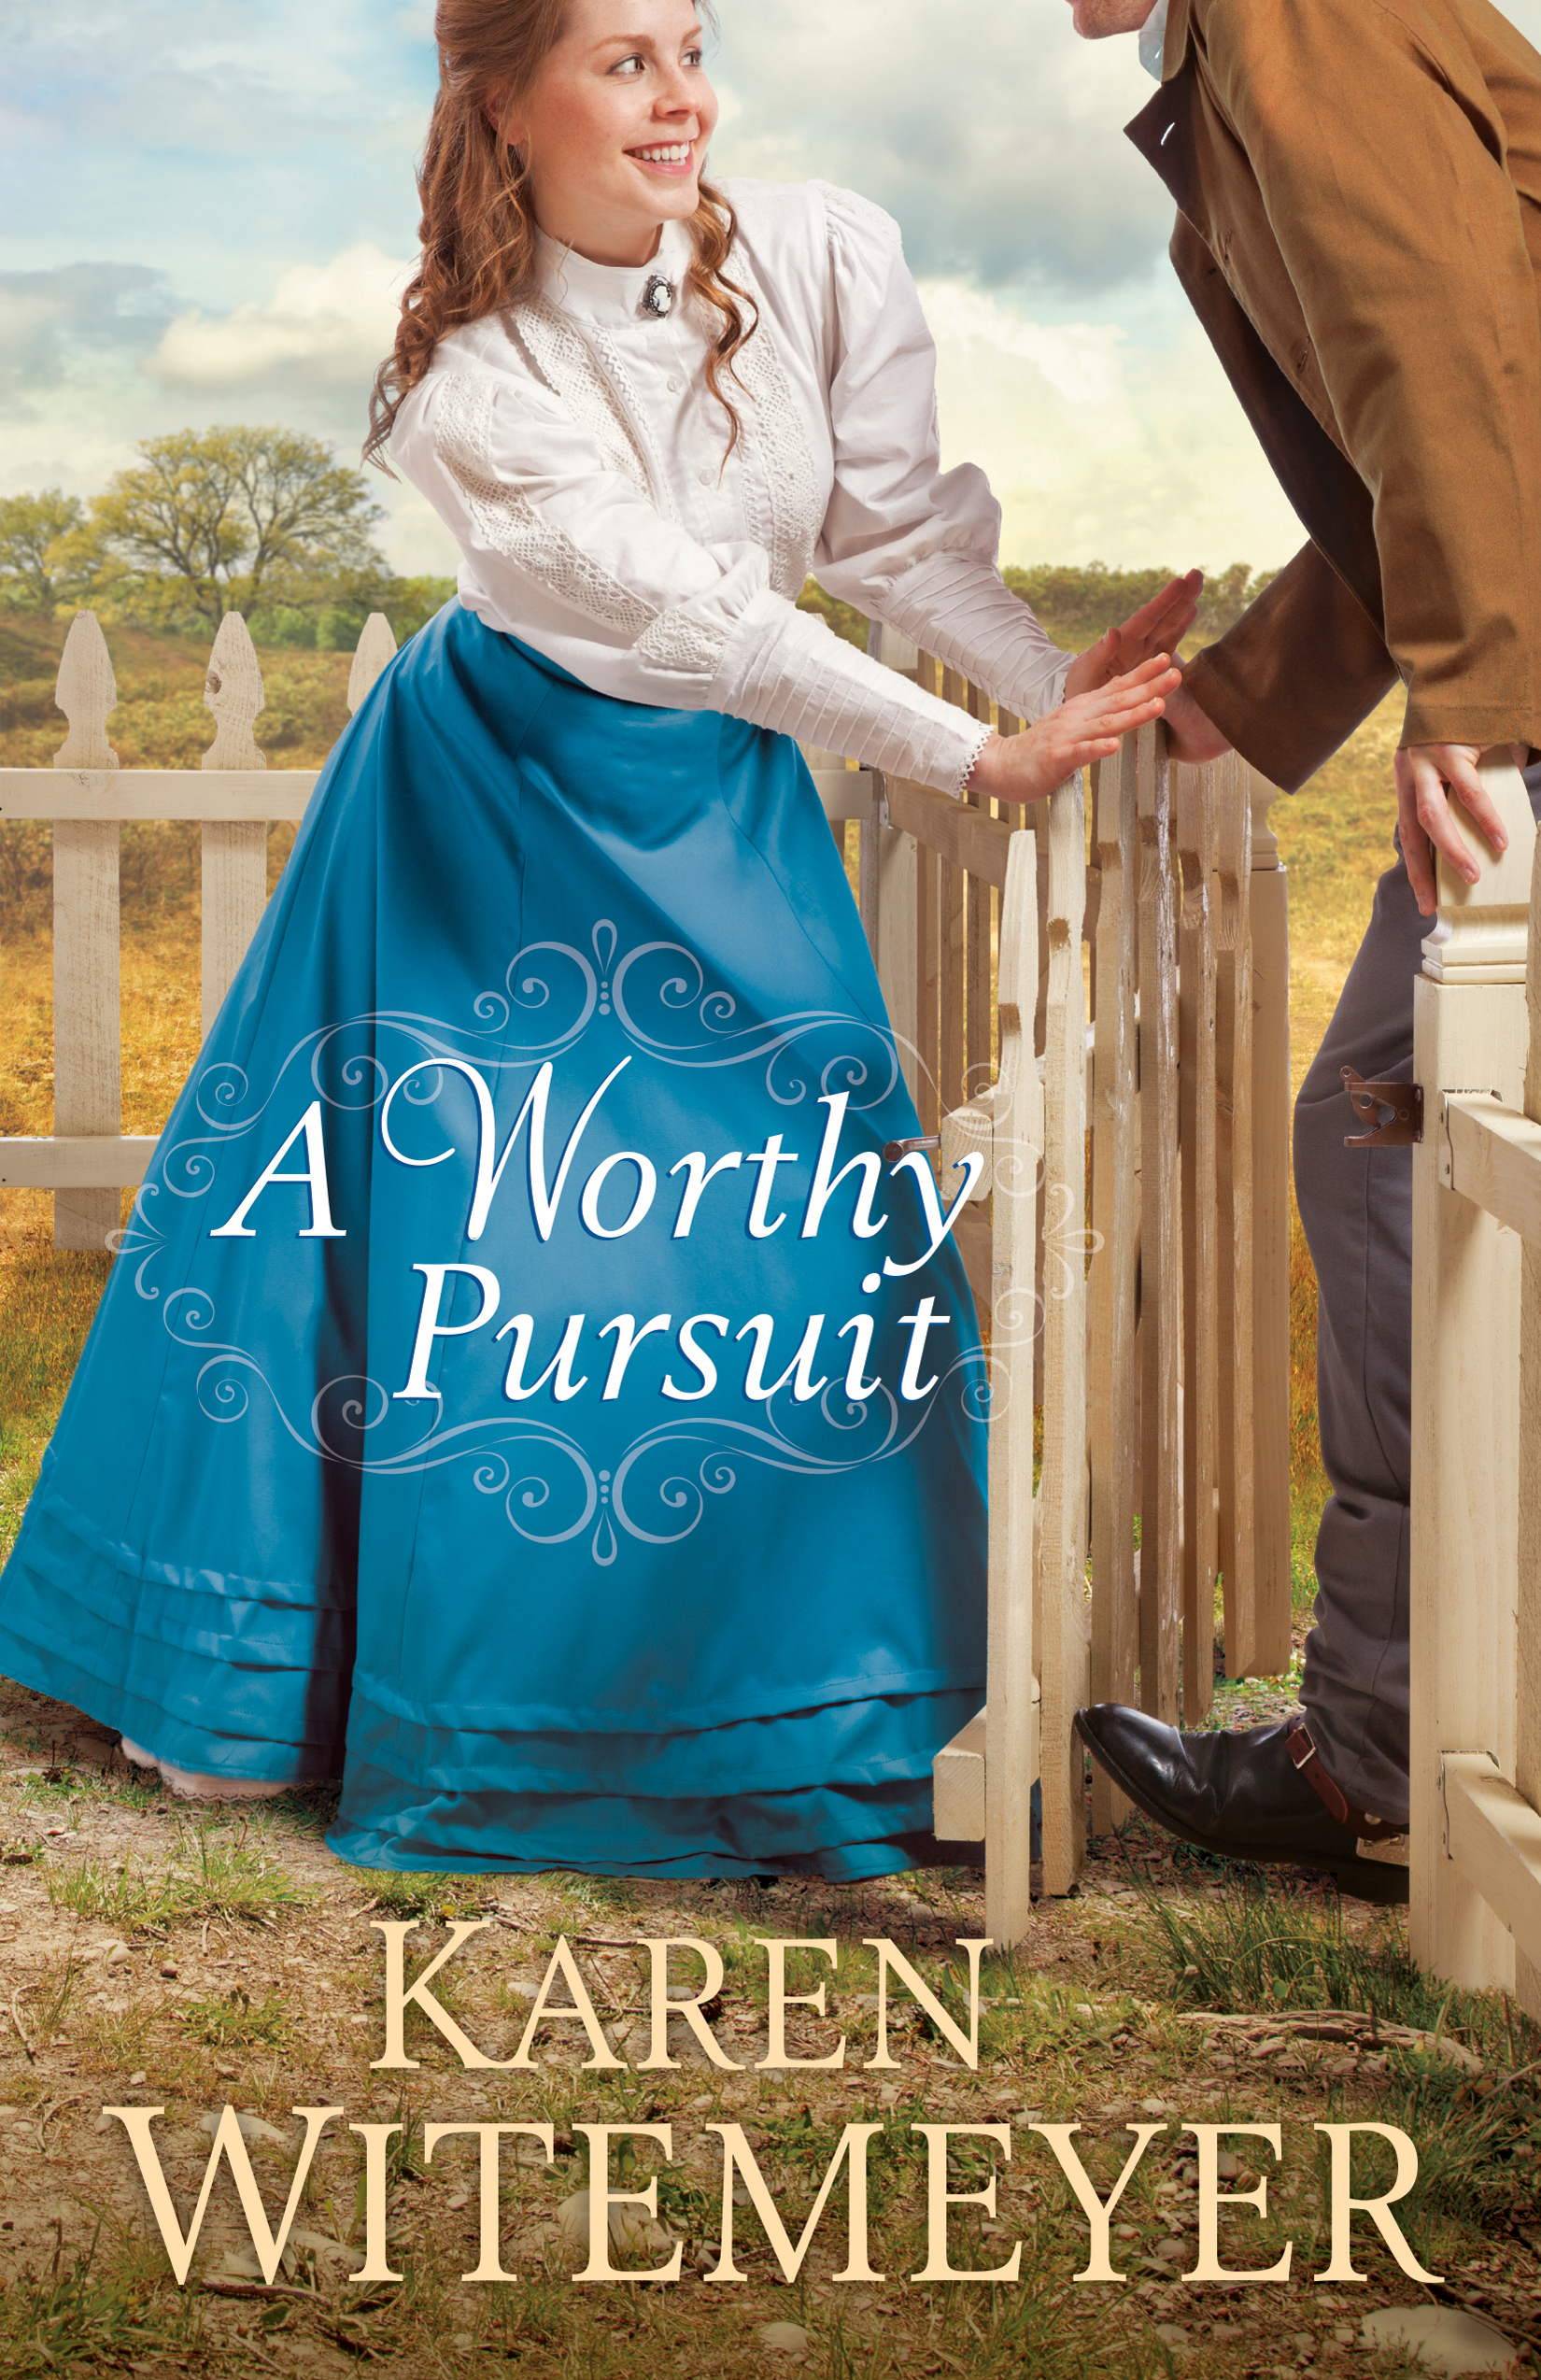 Book Review: A Worthy Pursuit by Karen Witemeyer on www.willbakeforbooks.com